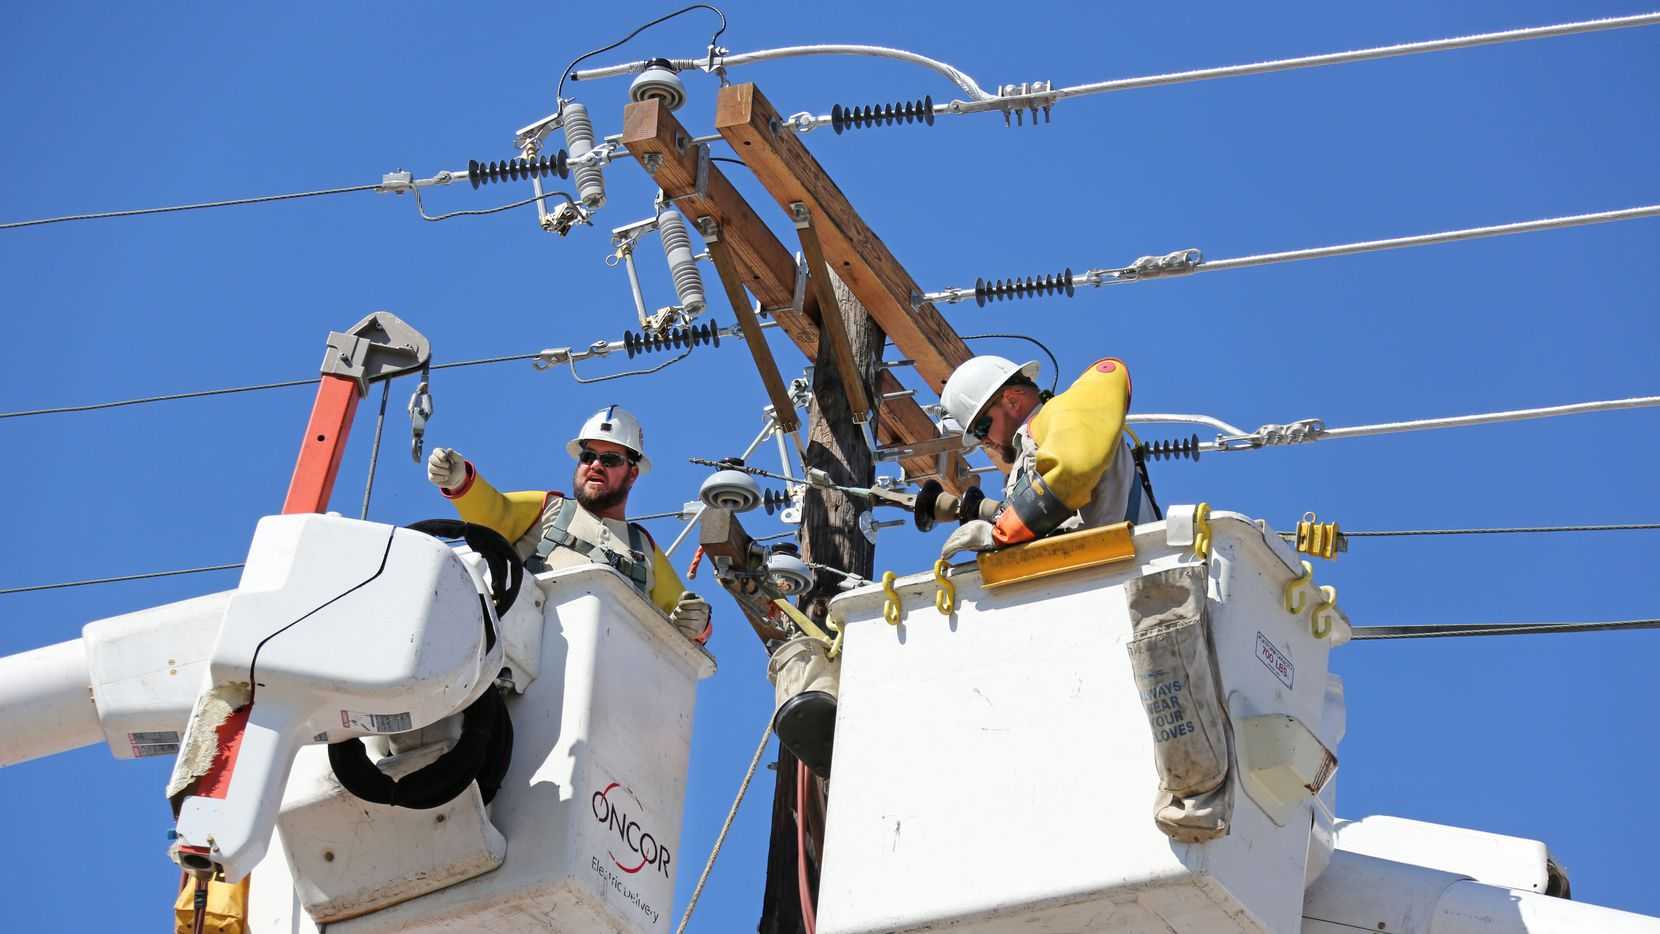 NextEra Energy has bid $18.7 billion to buy Oncor and wants to control its board of directors. But others want Oncor to retain an independent board to protect over 3 million ratepayers. (Louis DeLuca/The Dallas Morning News)